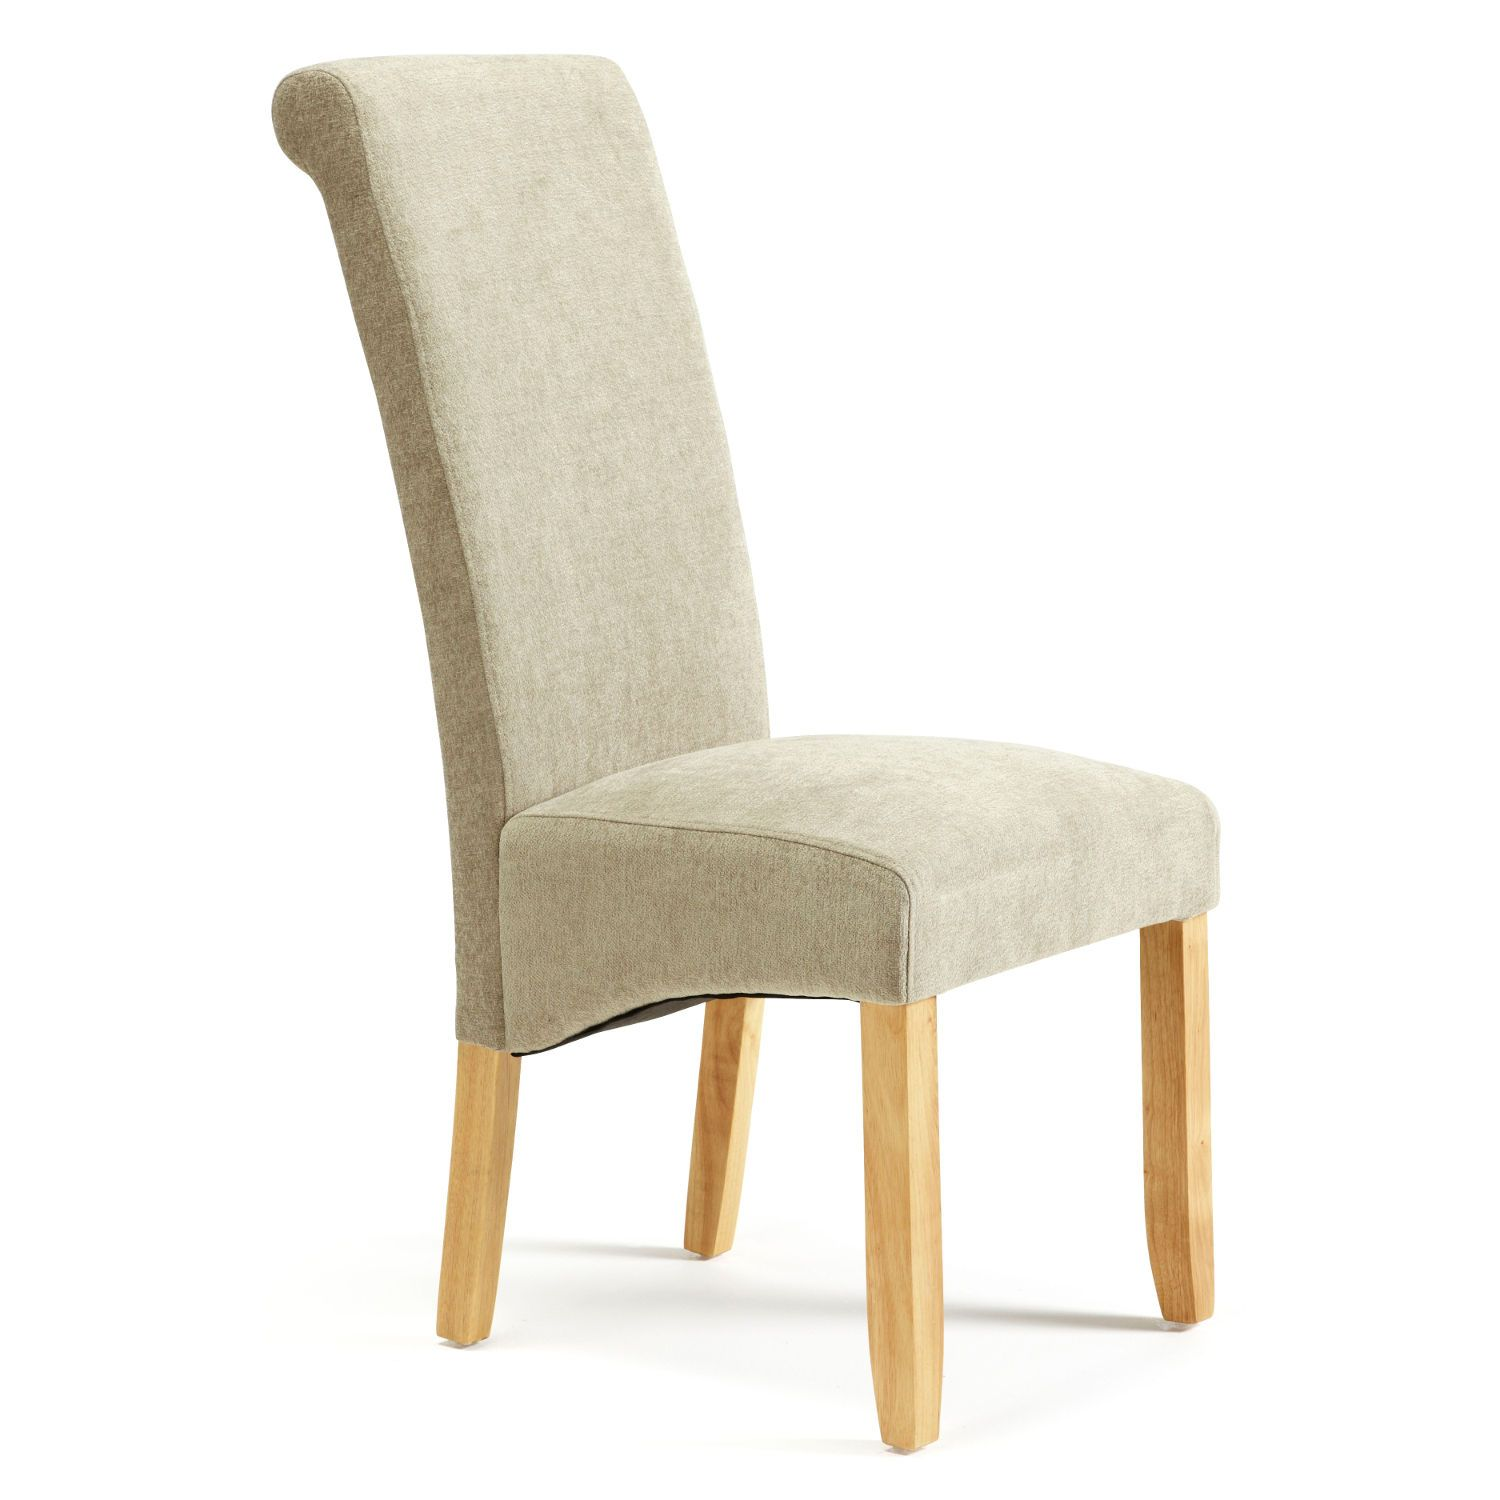 Kingston Fabric Dining Chair Next Day Delivery From Worlds Everything